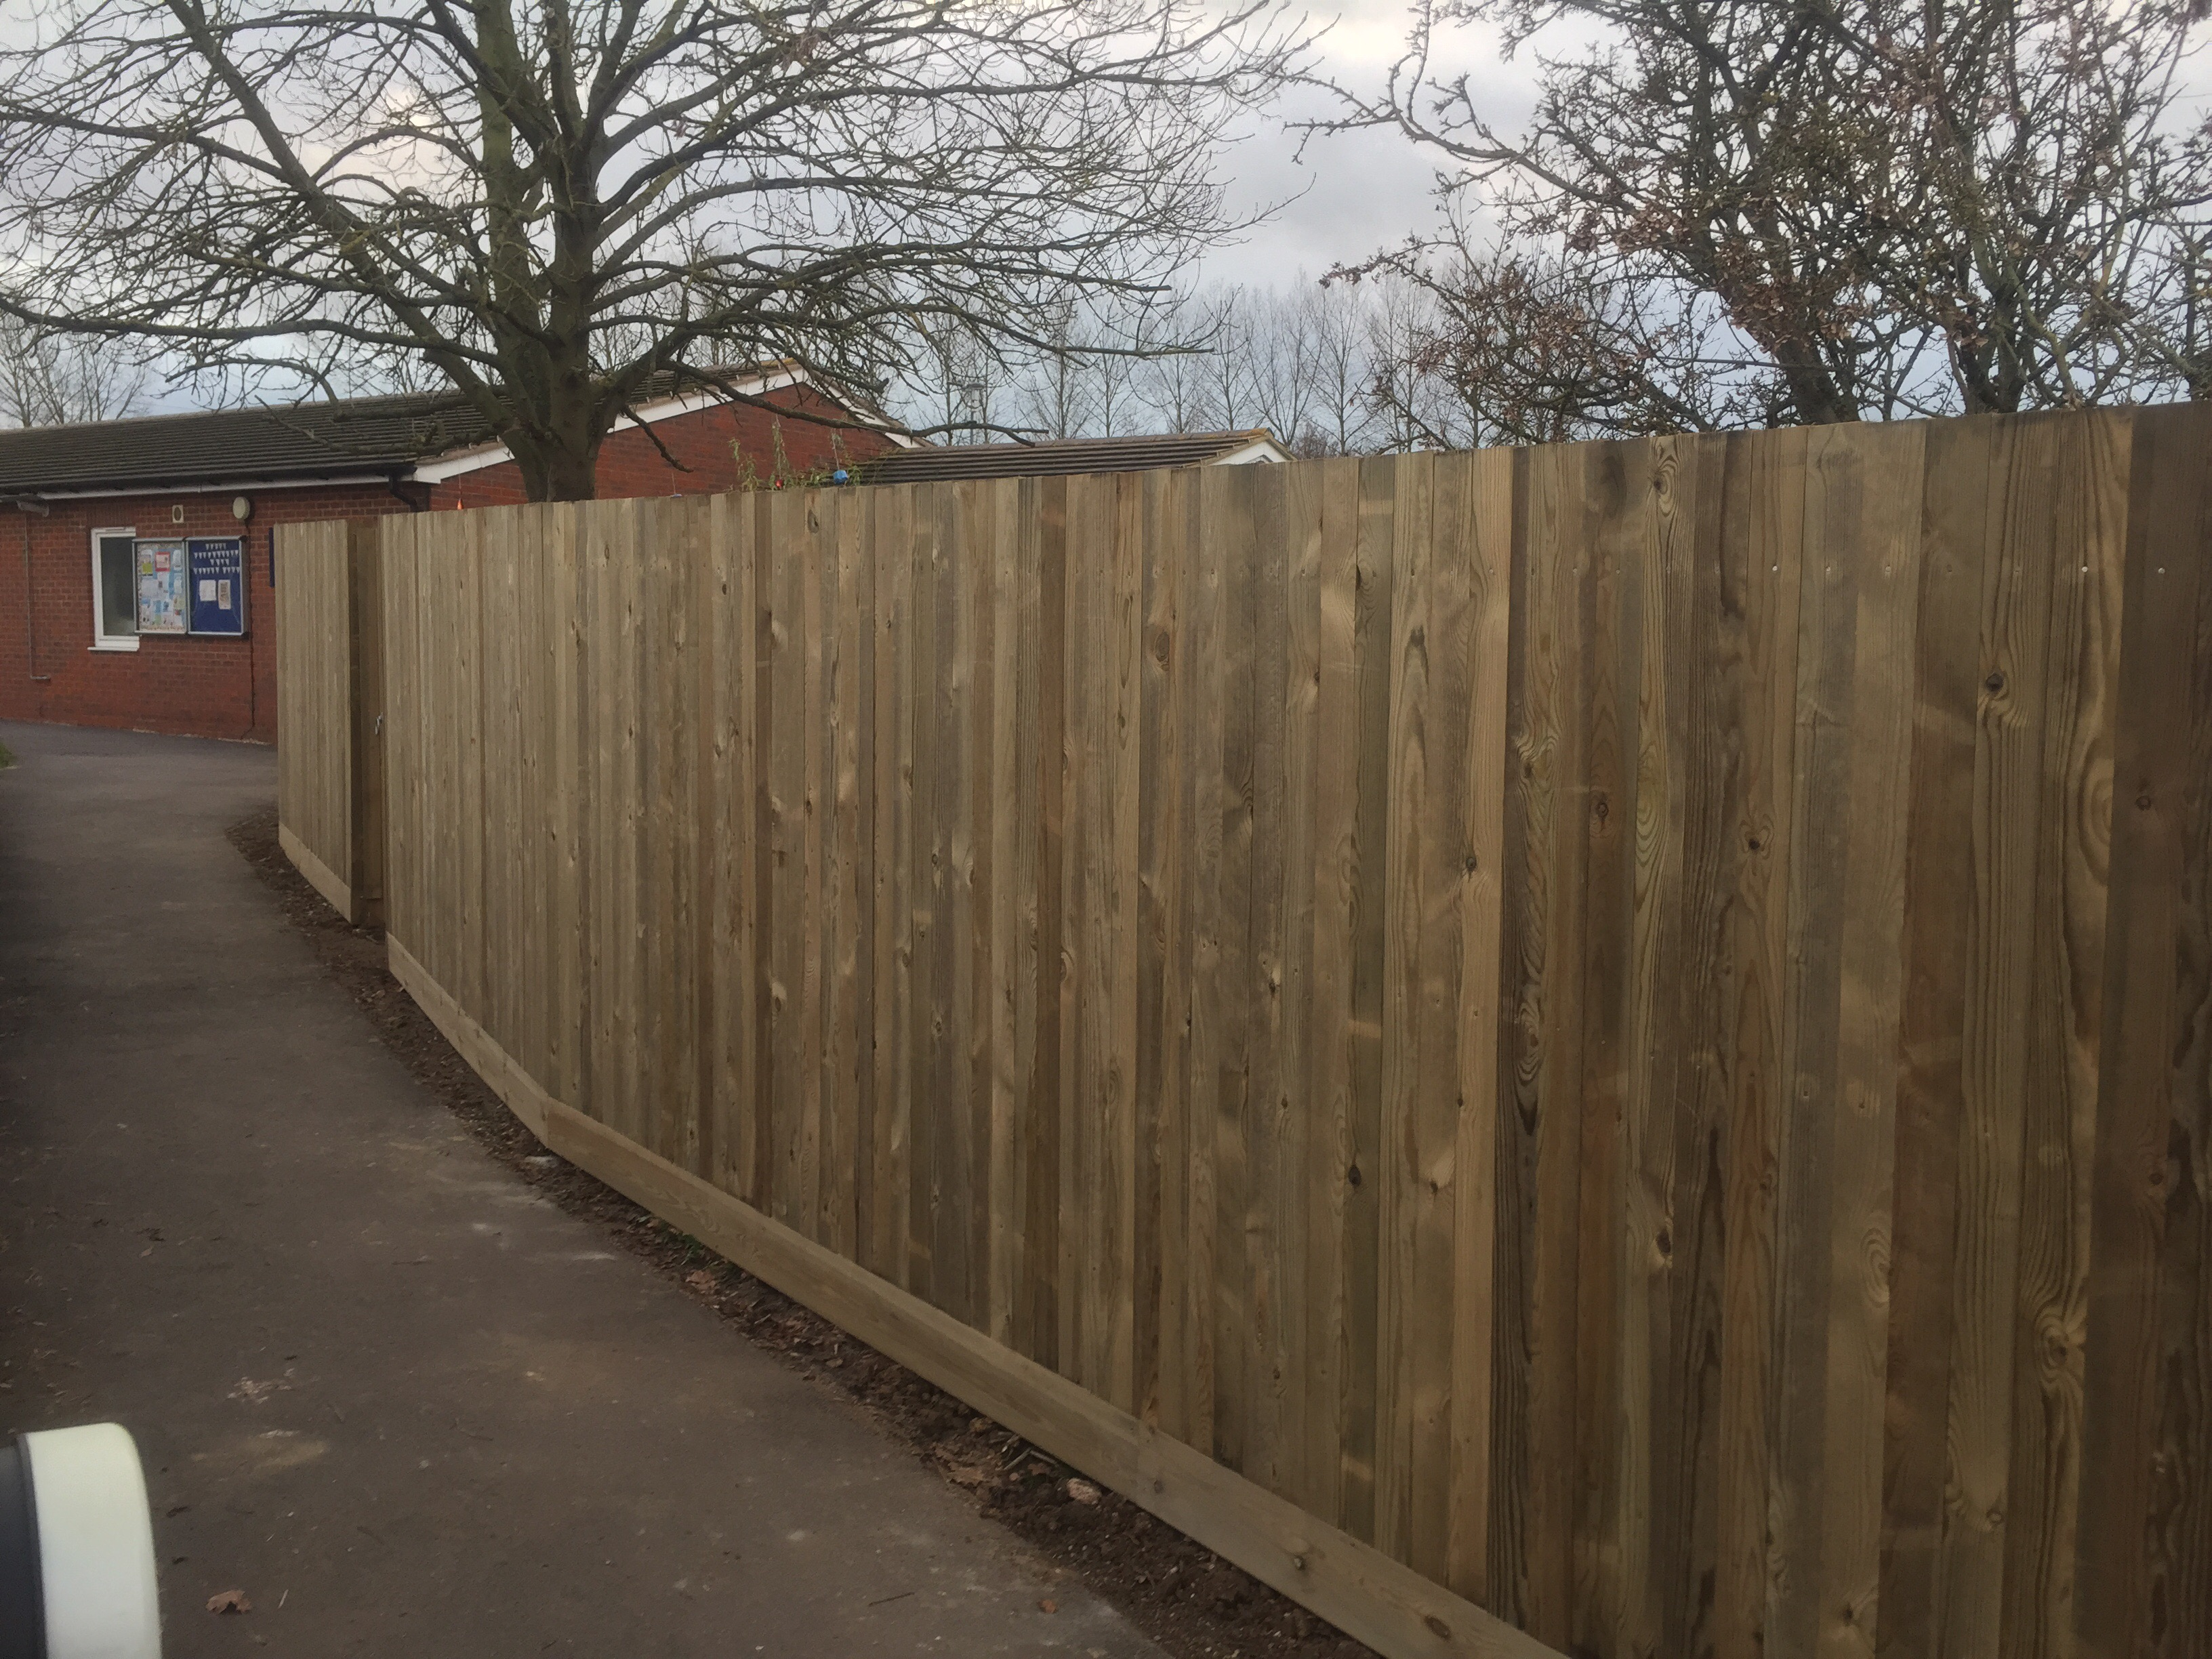 Planed wood fence